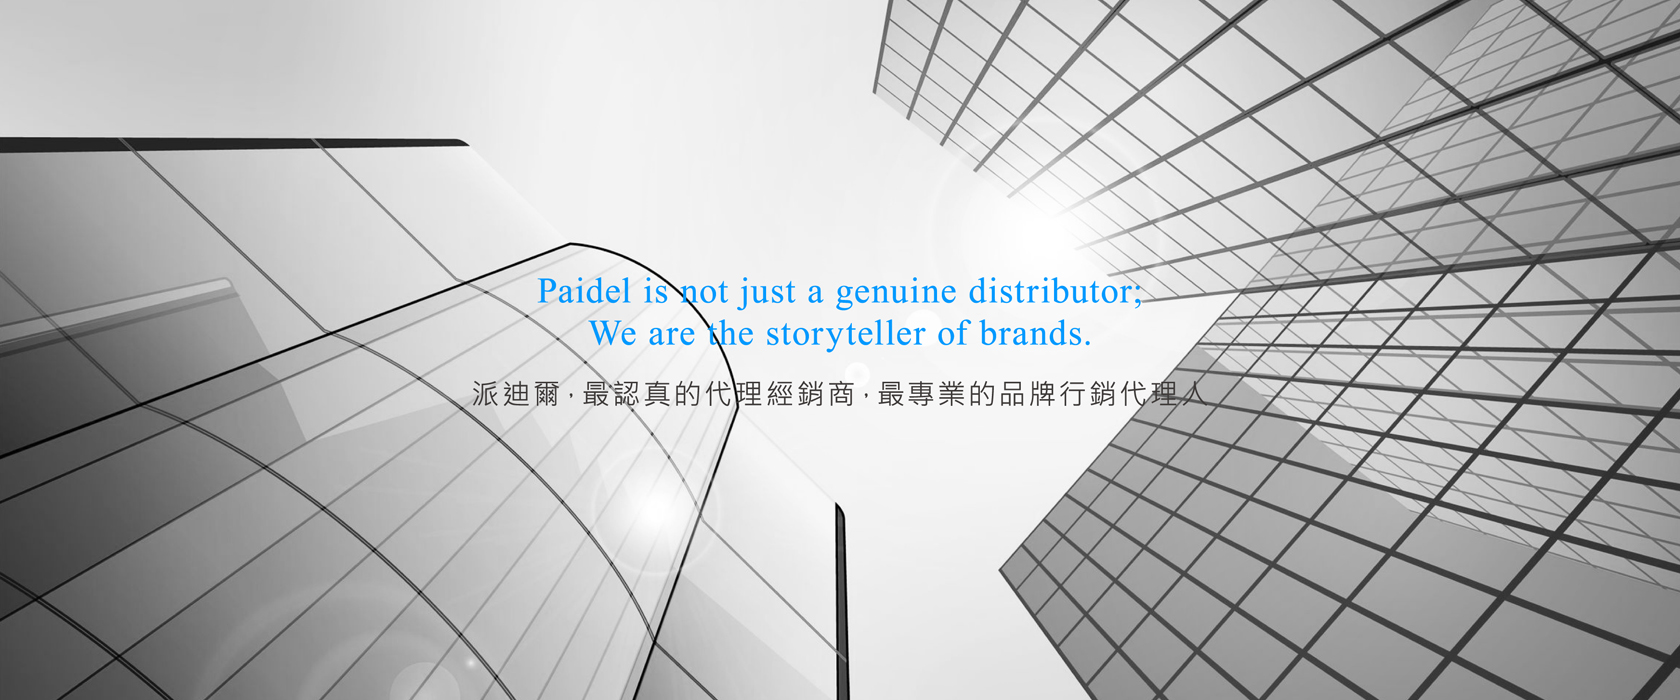 Paidel is not just a genuine distributor;We are the storyteller of brands.派迪爾,最認真的代理經銷商,最專業的品牌行銷代理人